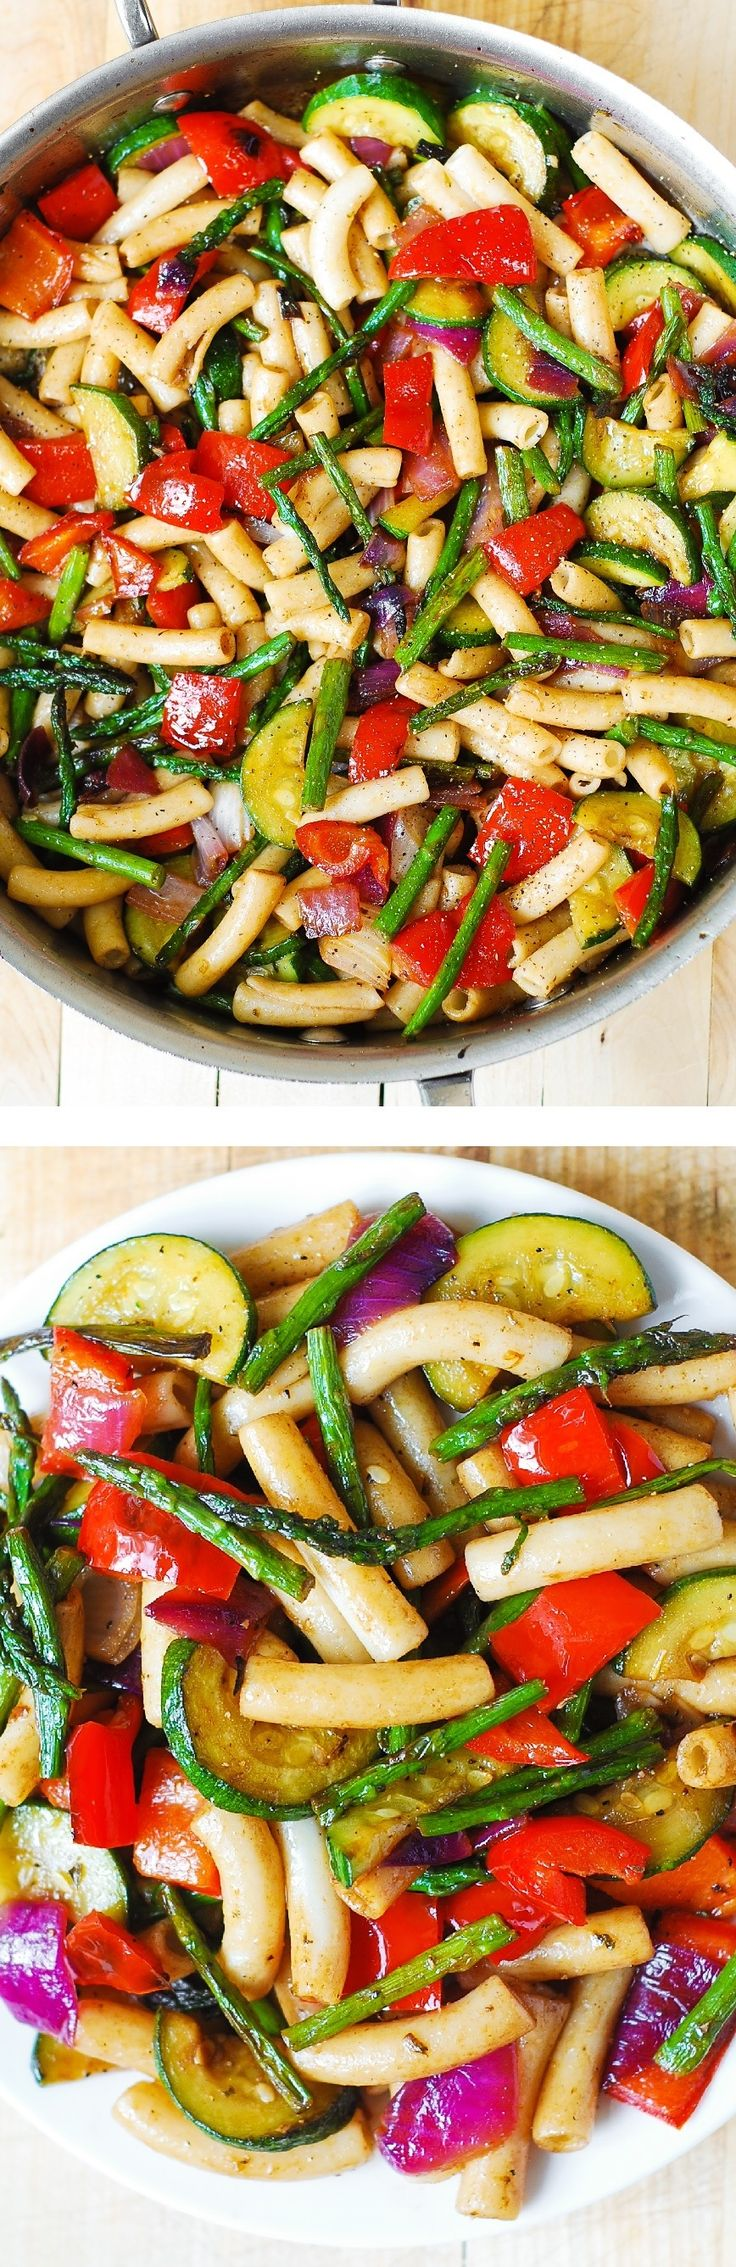 Healthy Pasta Salad with Roasted Vegetables - a delicious way to utilize lots of veggies in a healthy, satisfying main dish!